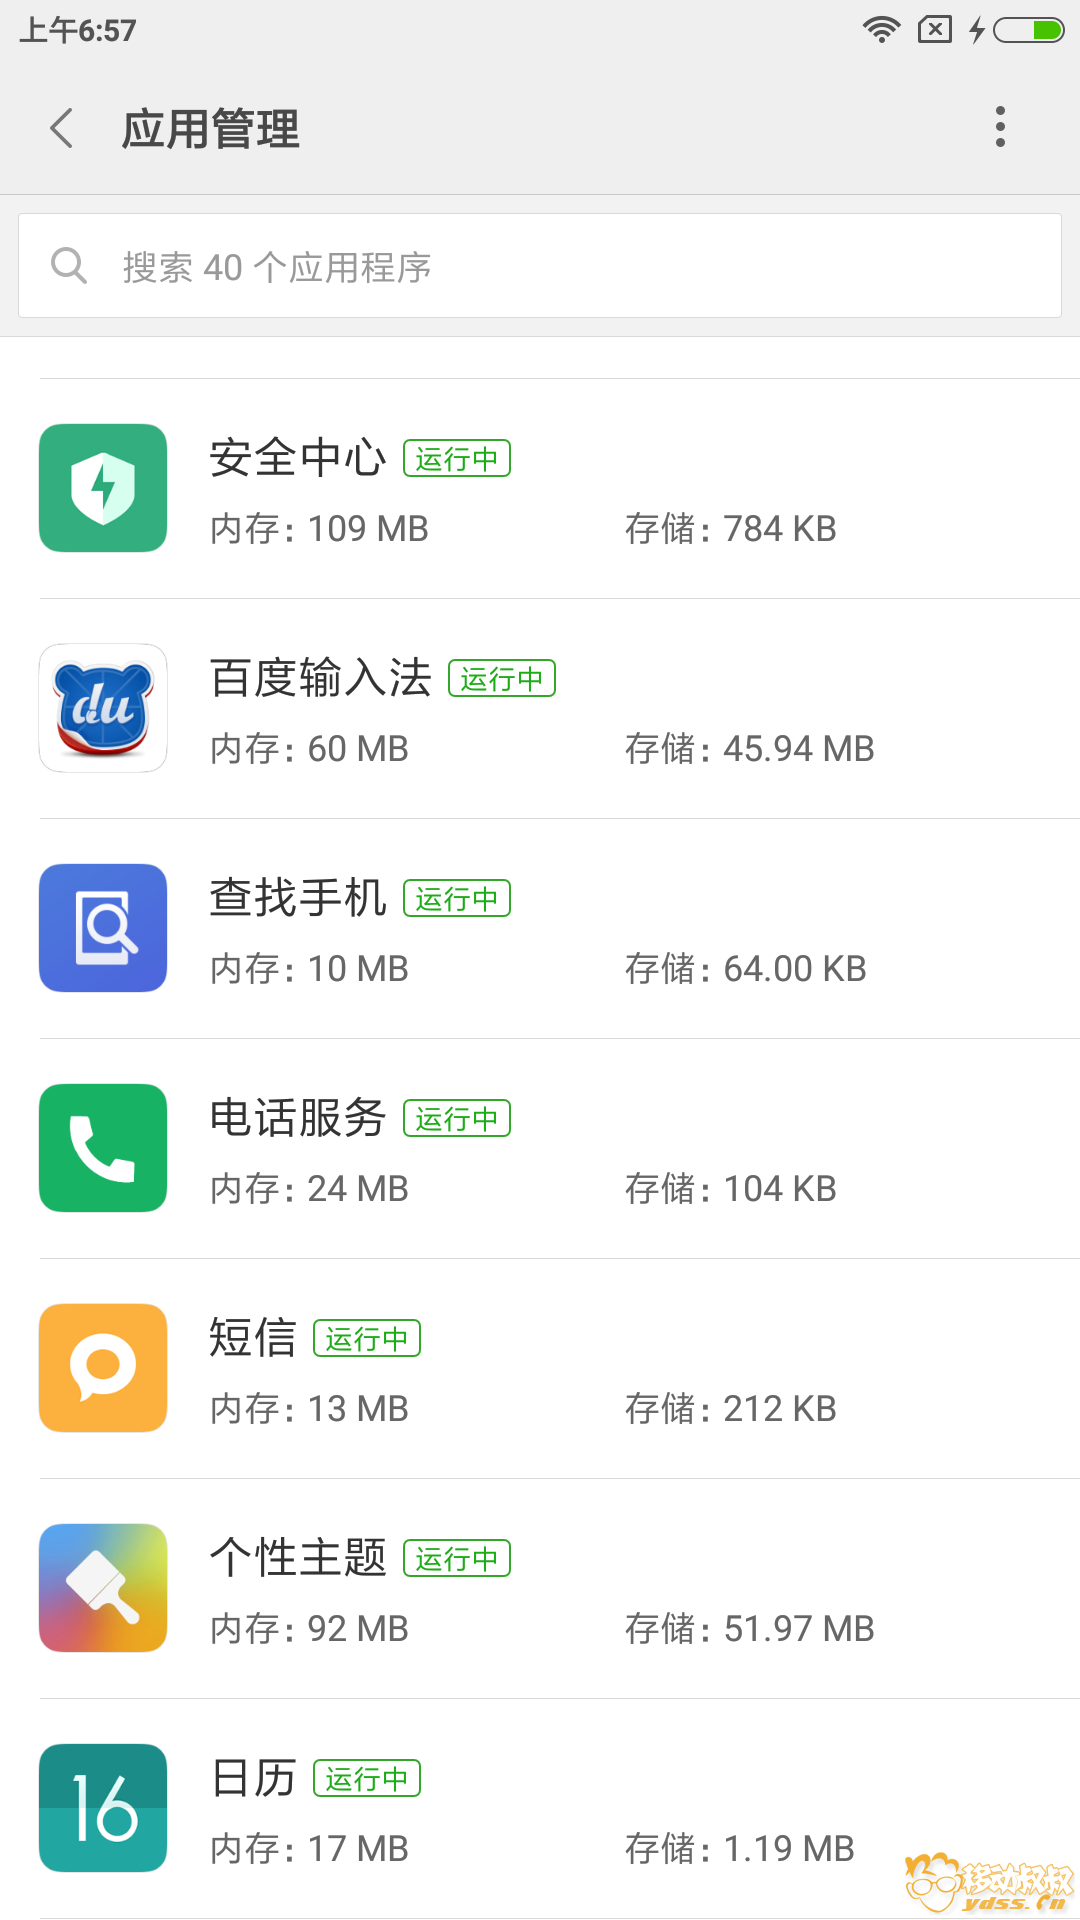 Screenshot_2018-01-09-06-57-17-100_com.miui.securitycenter.png